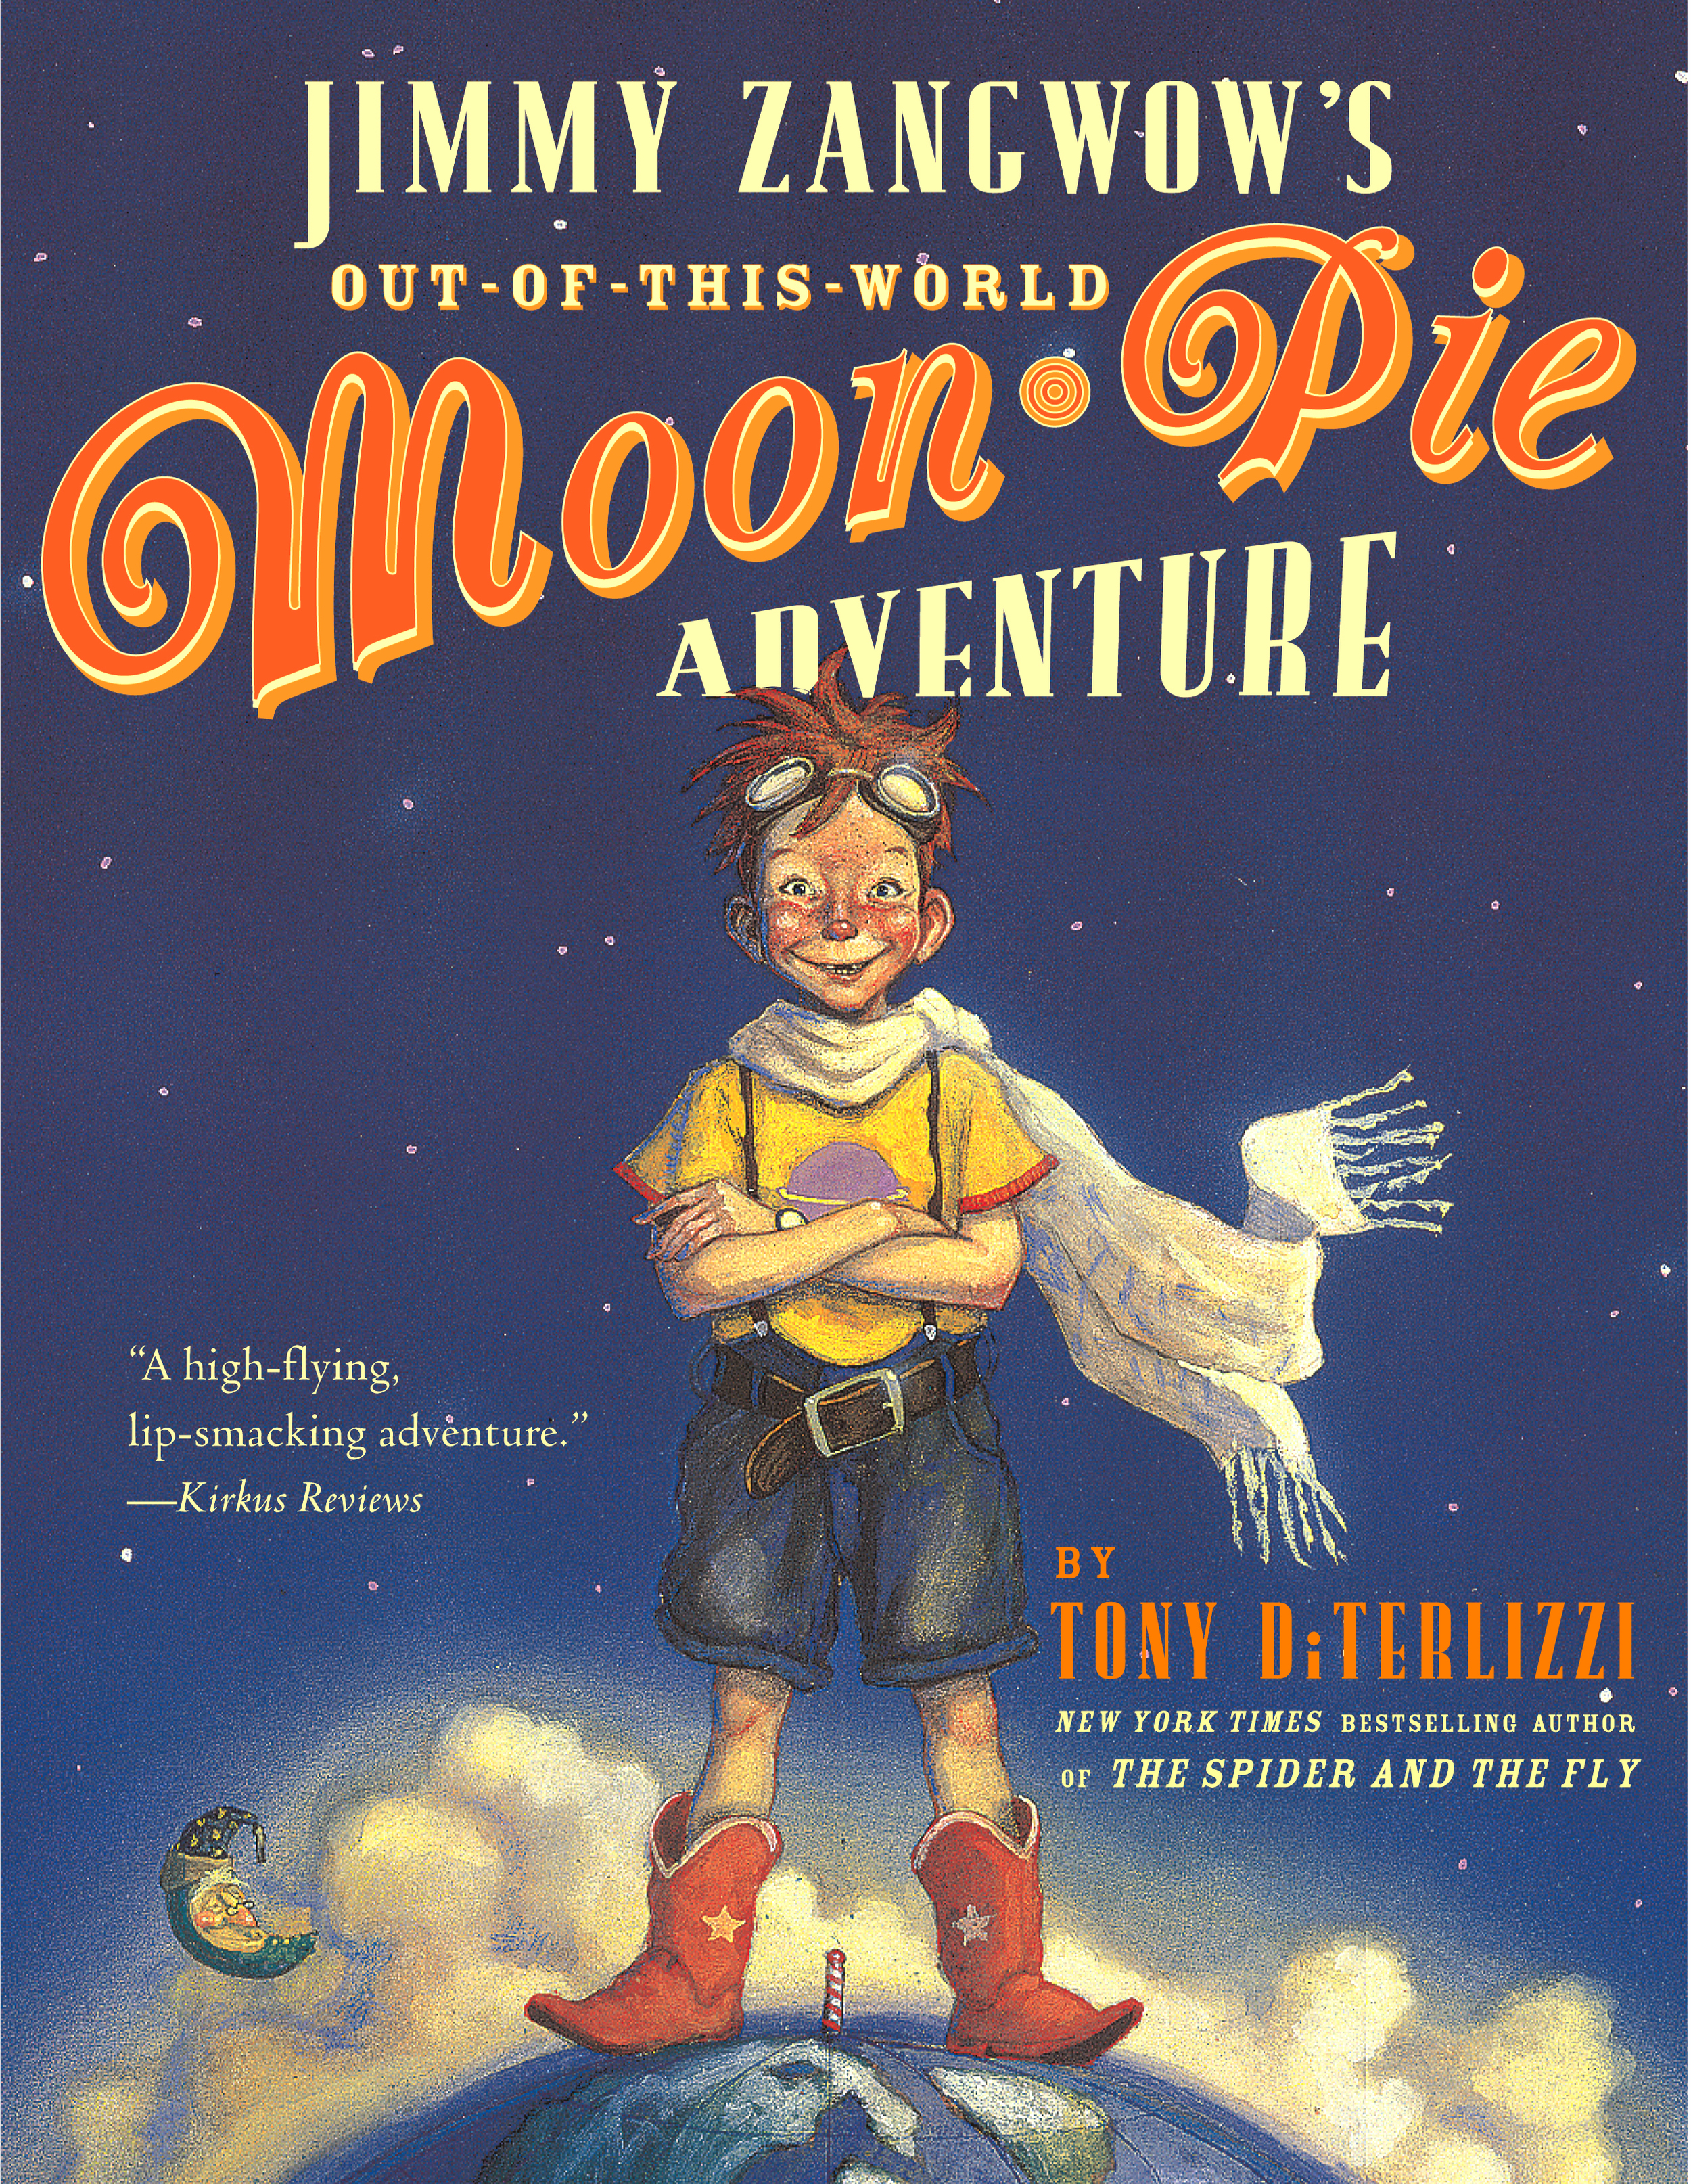 We had no idea someone had written a book about moon pies. We had no idea anyone outside of a few people living in trailers knew what a moon pie was.